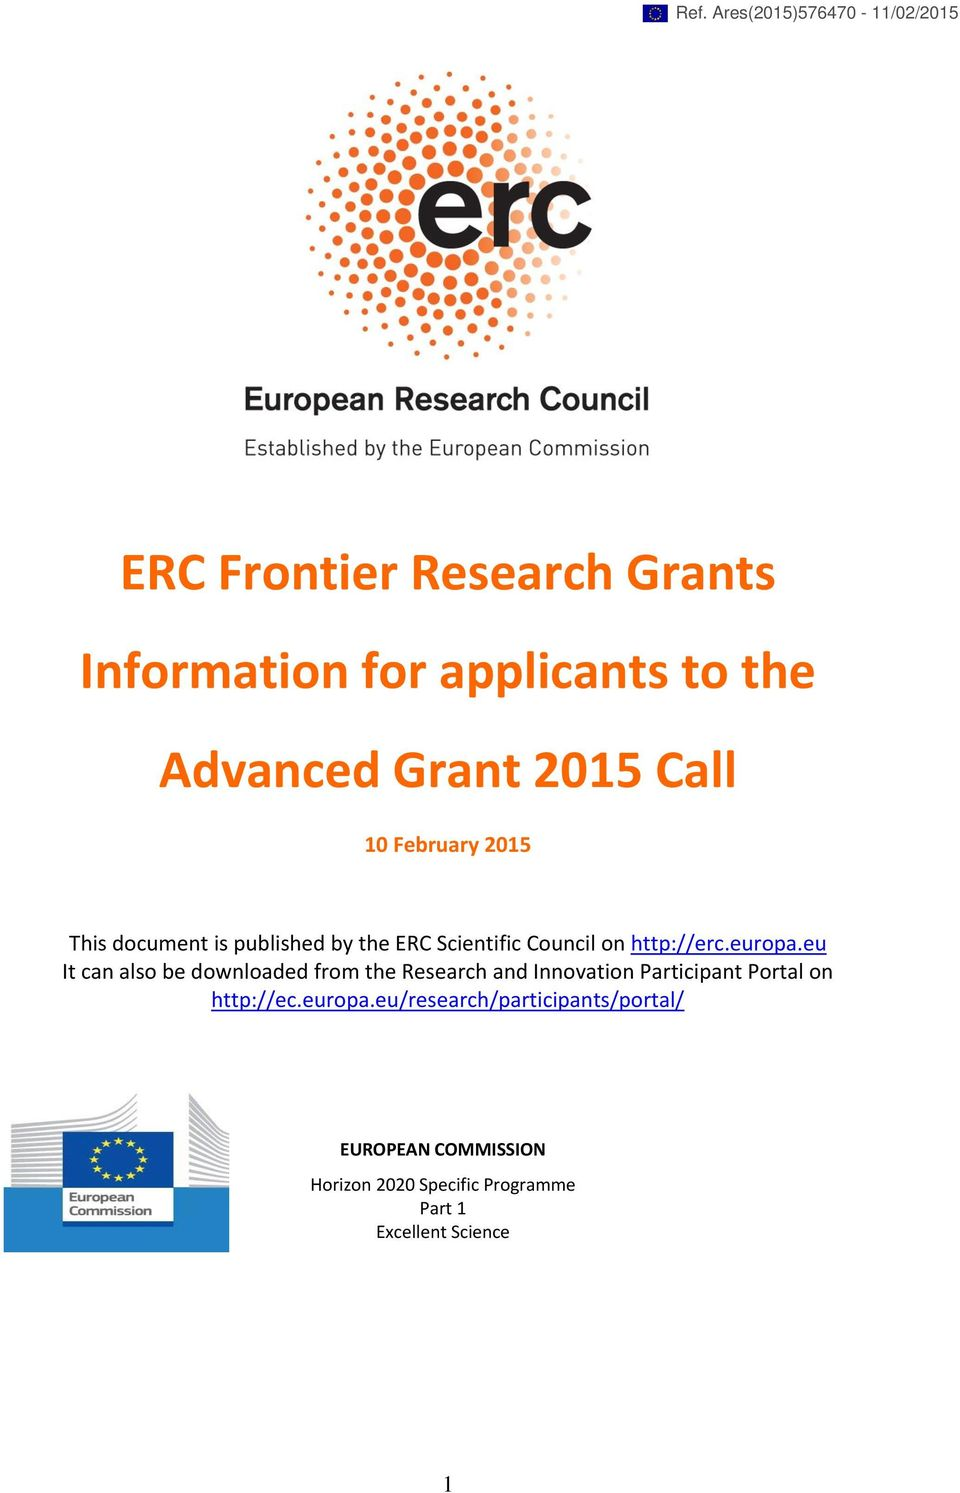 europa.eu It can also be downloaded from the Research and Innovation Participant Portal on http://ec.